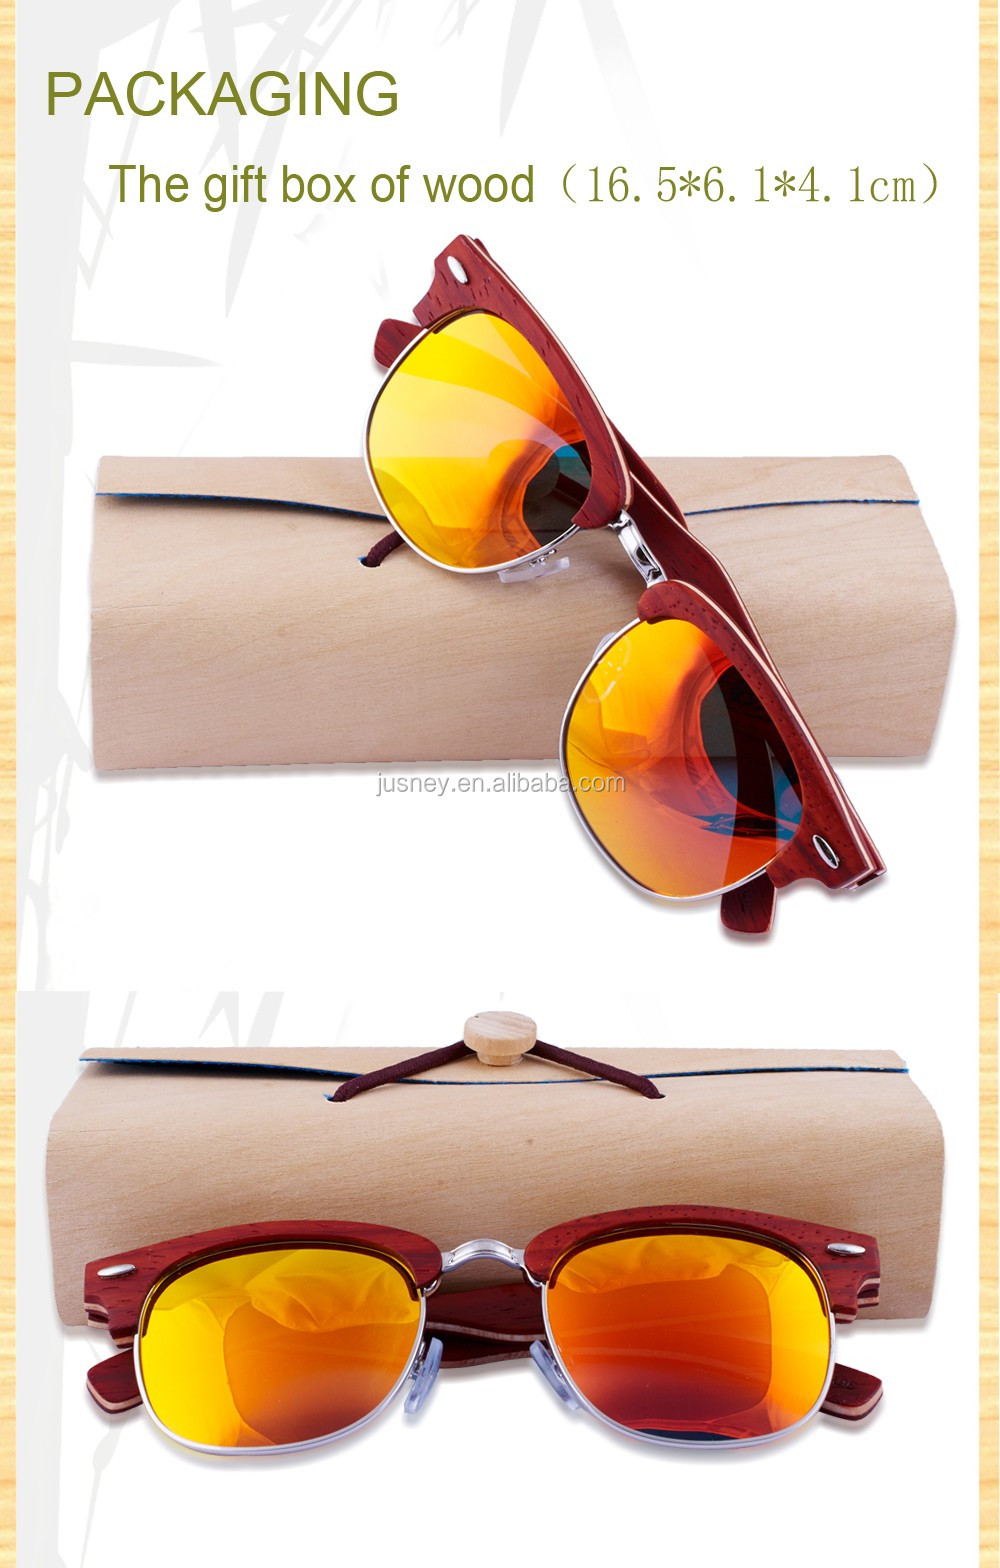 Fashionable Polarized Bamboo Sunglasses/cycling padauk zebra red Wood Sunglasses